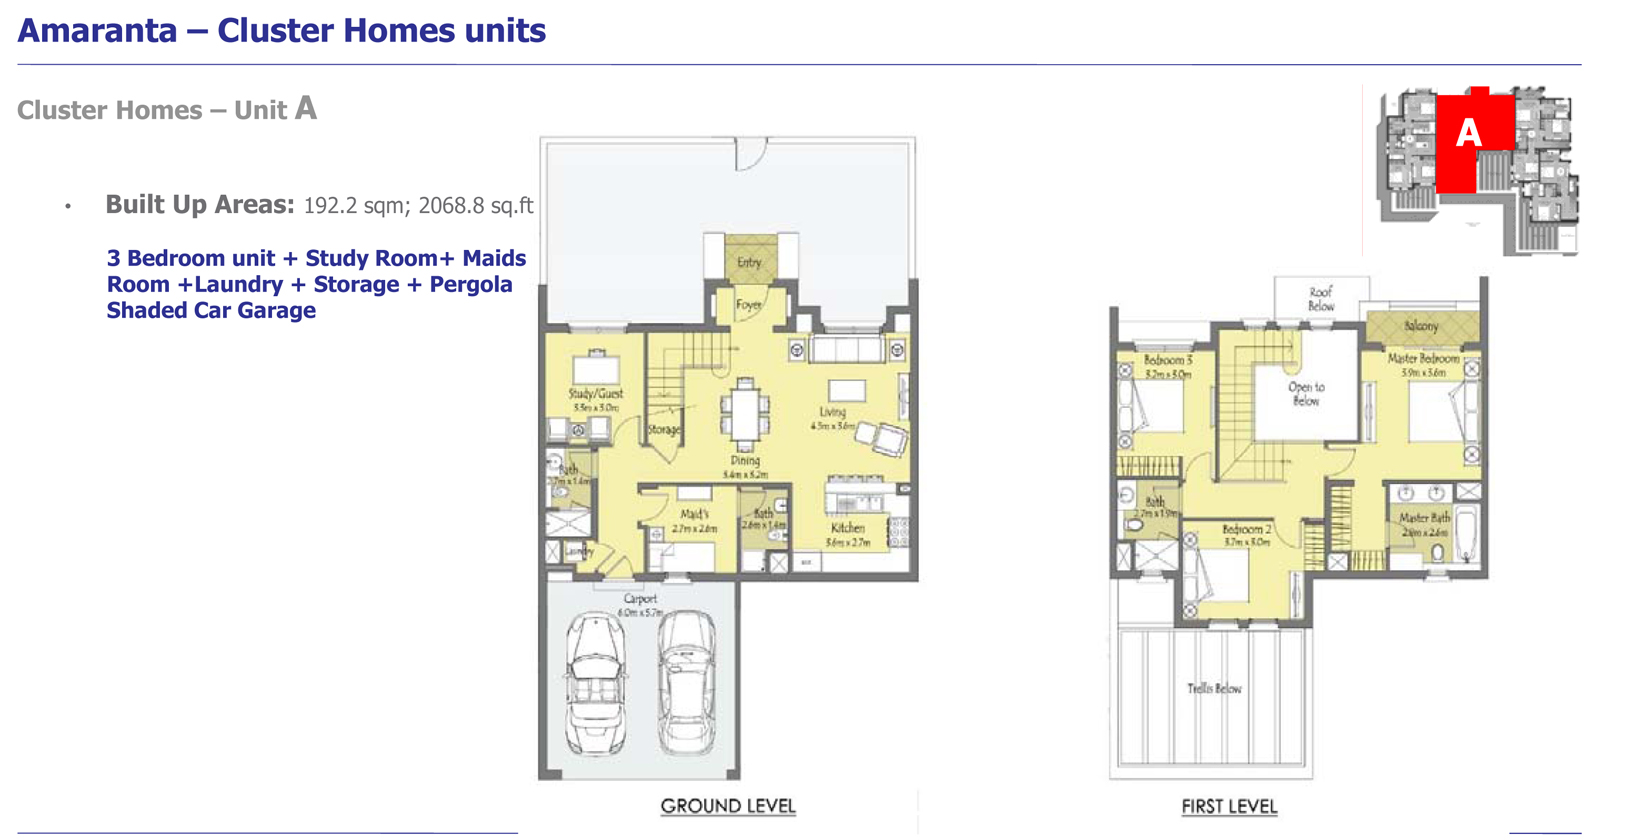 Phase 3 - Cluster Homes – Unit A